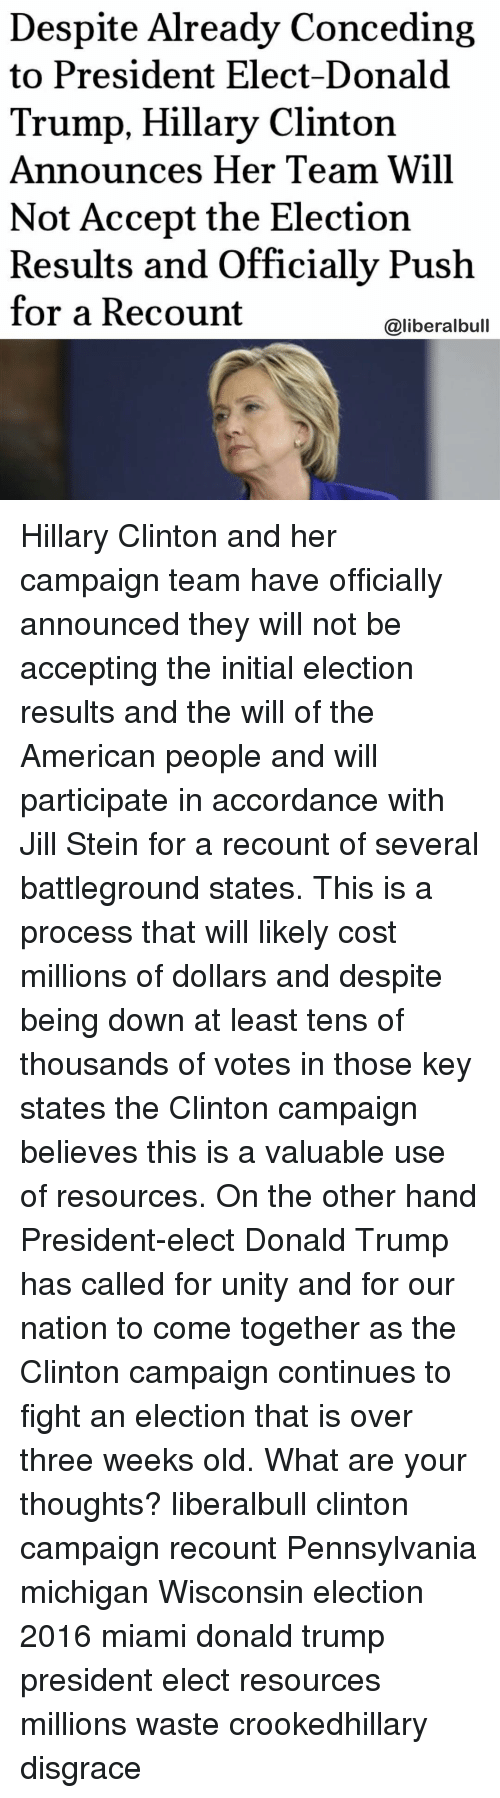 Hillary Clinton Announcement: Despite Already Conceding  to President Elect-Donald  Trump, Hillary Clinton  Announces Her Team Will  Not Accept the Election  Results and Officially Push  for a Recount  @liberalbull Hillary Clinton and her campaign team have officially announced they will not be accepting the initial election results and the will of the American people and will participate in accordance with Jill Stein for a recount of several battleground states. This is a process that will likely cost millions of dollars and despite being down at least tens of thousands of votes in those key states the Clinton campaign believes this is a valuable use of resources. On the other hand President-elect Donald Trump has called for unity and for our nation to come together as the Clinton campaign continues to fight an election that is over three weeks old. What are your thoughts? liberalbull clinton campaign recount Pennsylvania michigan Wisconsin election 2016 miami donald trump president elect resources millions waste crookedhillary disgrace